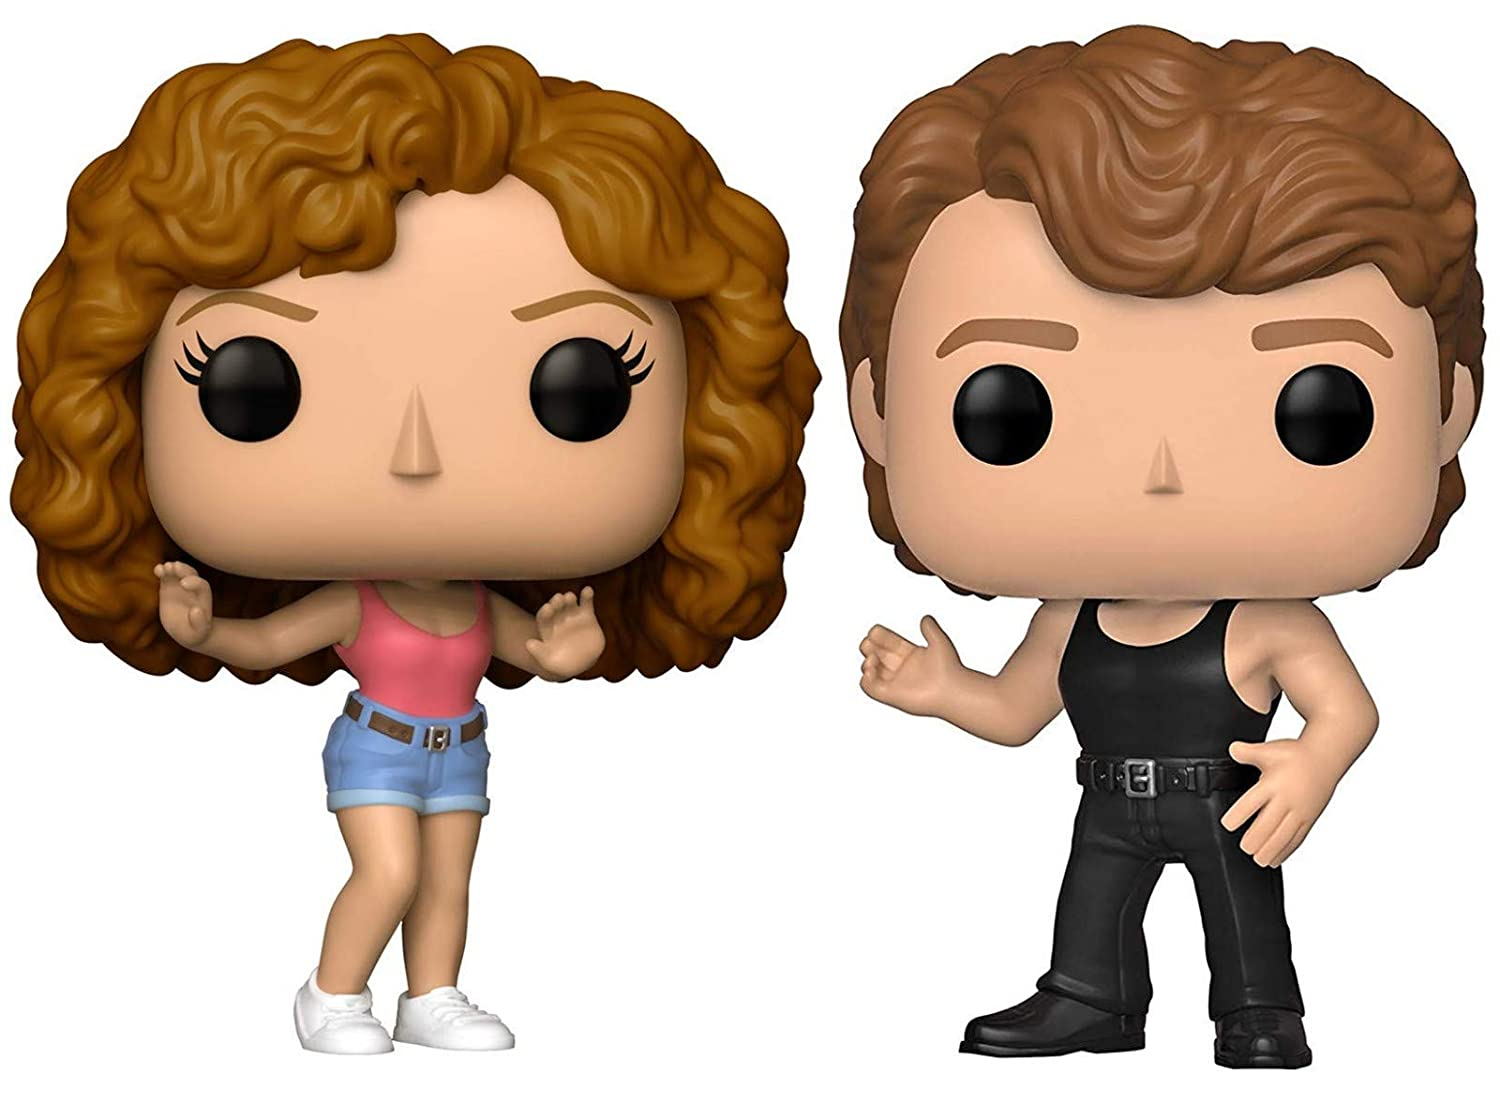 Funko Pop Dirty Dancing Baby Toy New Movies: